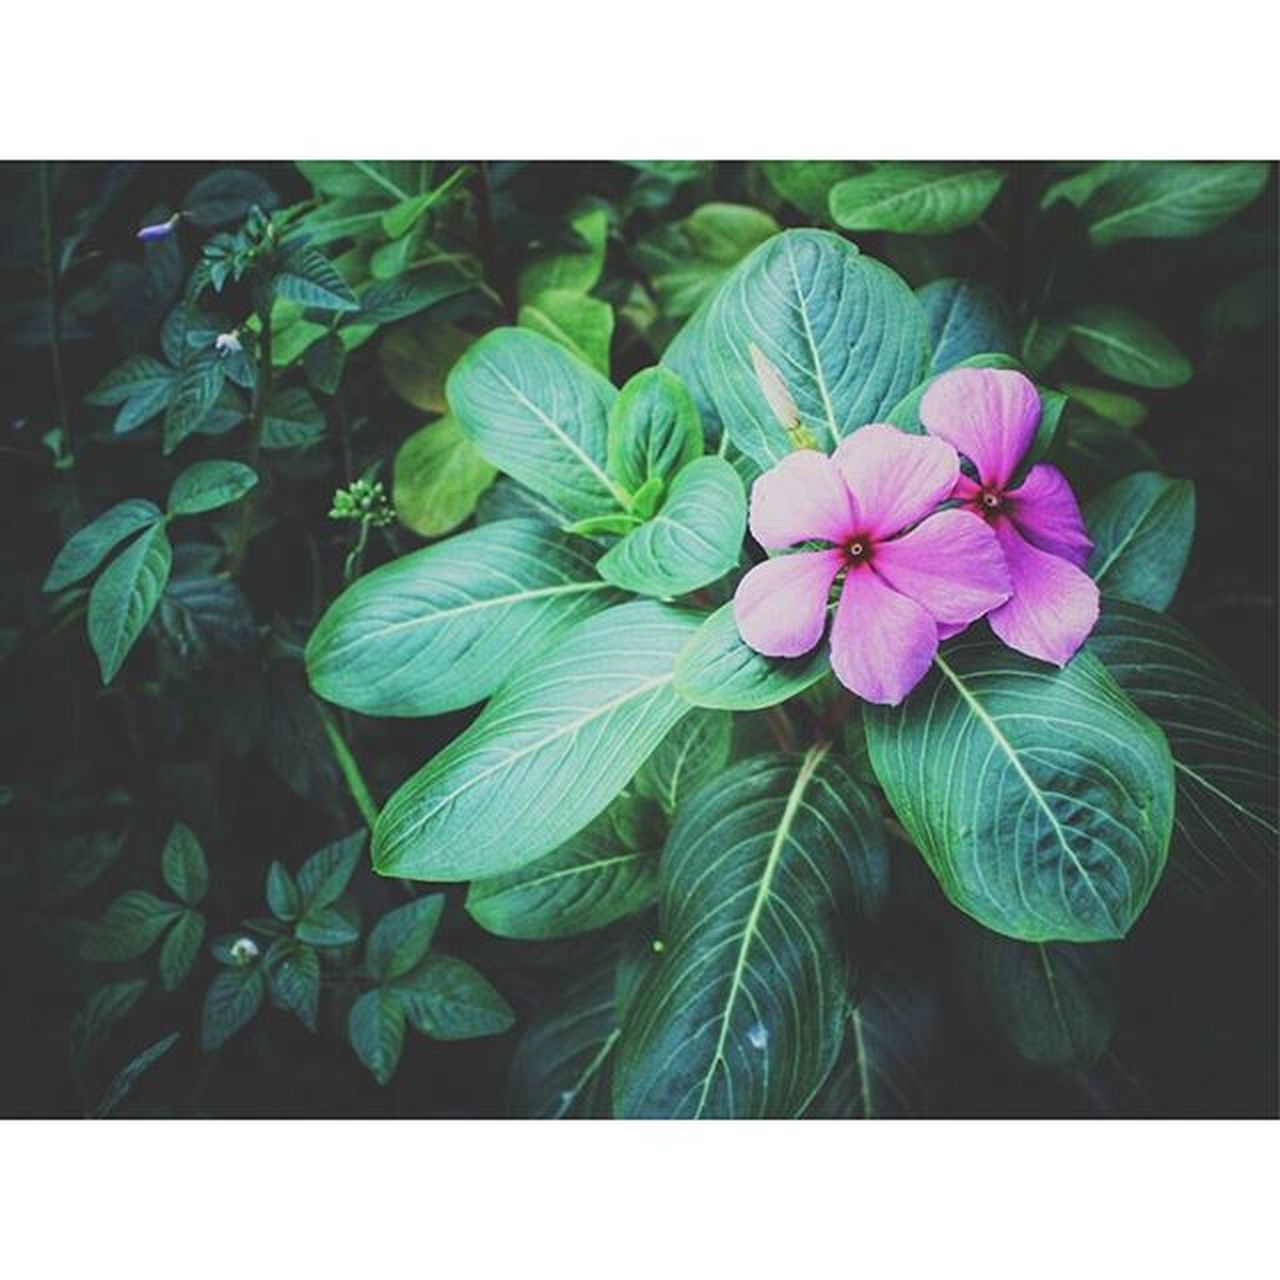 Such a beaute. I always see this flower when I'm on a walk for a good subject. Are we destined for each other, Love? Flora Flowersofinstagram Flowerstagram Flowersforyou Flowerporn Flowerpower Flowers Purple Streetphotography Stillphotography Still Vscogrid Vscocam Vscophile VSCO Canon Canonphotos Canonphotography Canon_official Canon_photos Wanderlust Vagabond Outandabout Walkwithme Viewbugcan